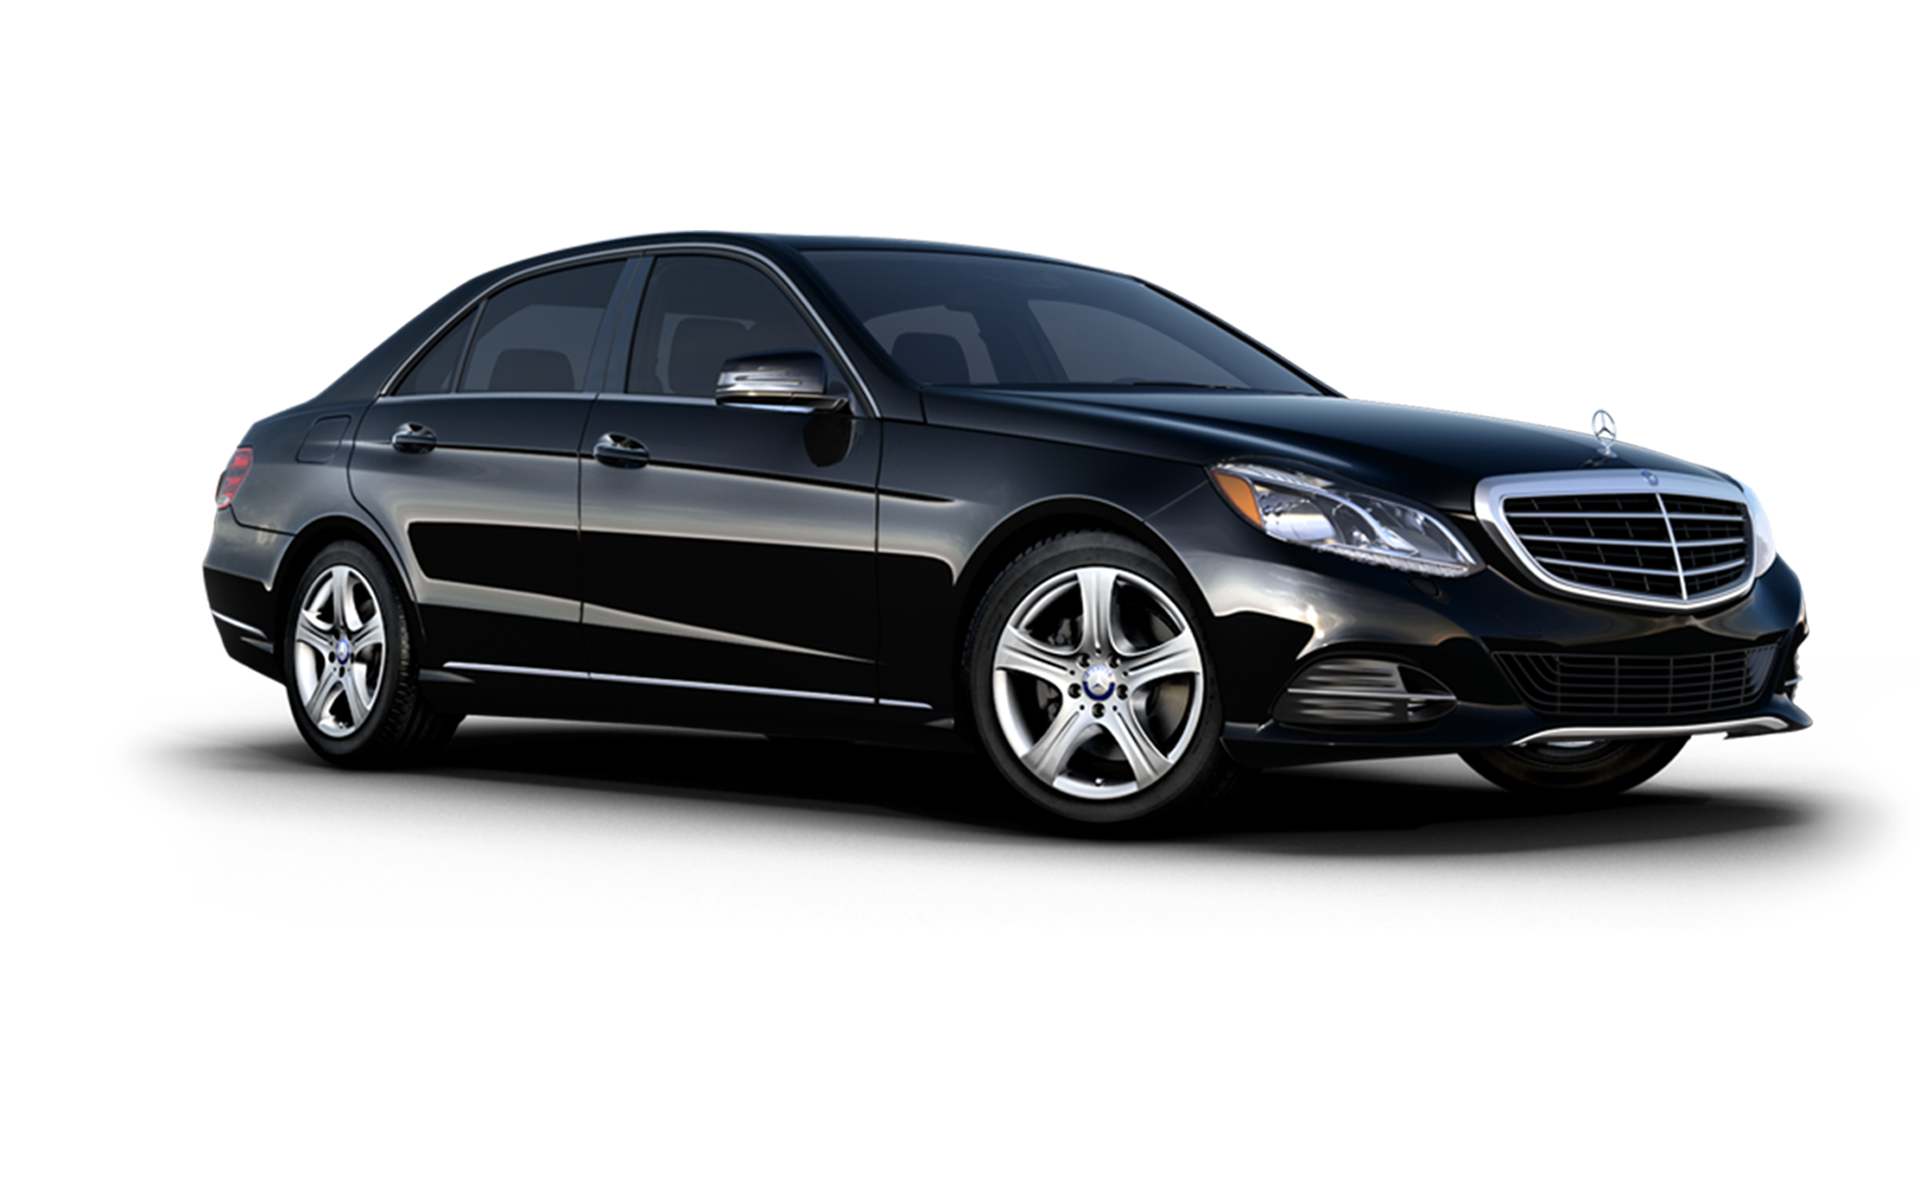 Milan chauffeur service limo service car rental with driver for Mercedes benz e320 service e